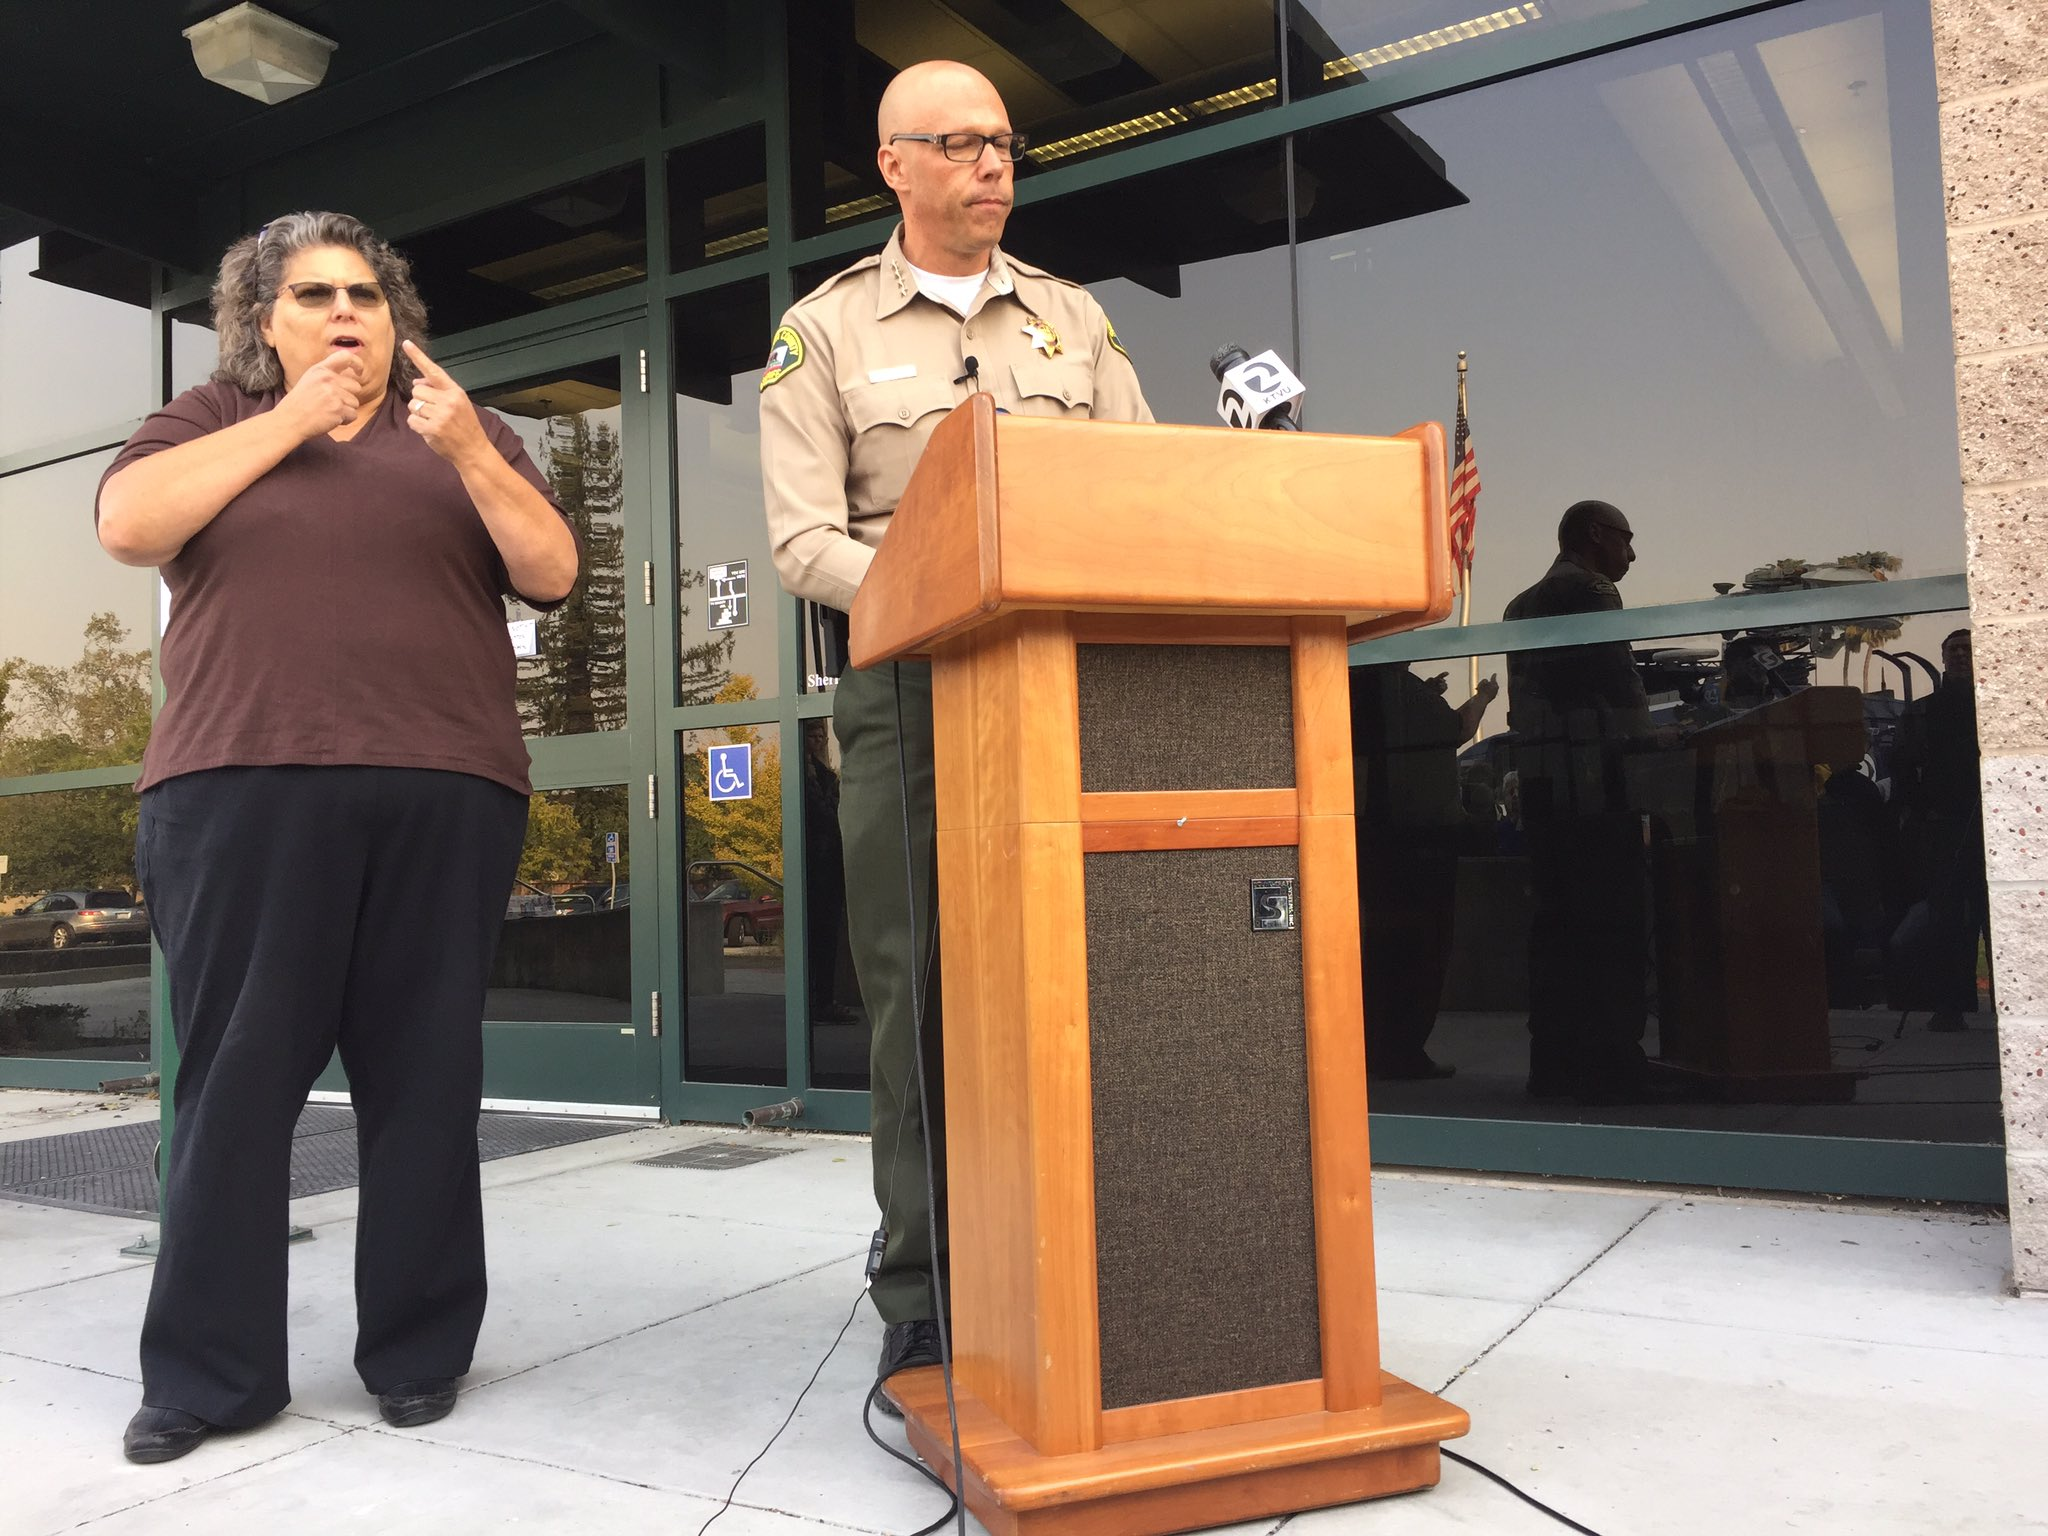 Evacuation shelters will not ask immigration status, Sonoma County sheriff says https://t.co/vpnqwxzgzW https://t.co/iRNGIng03i